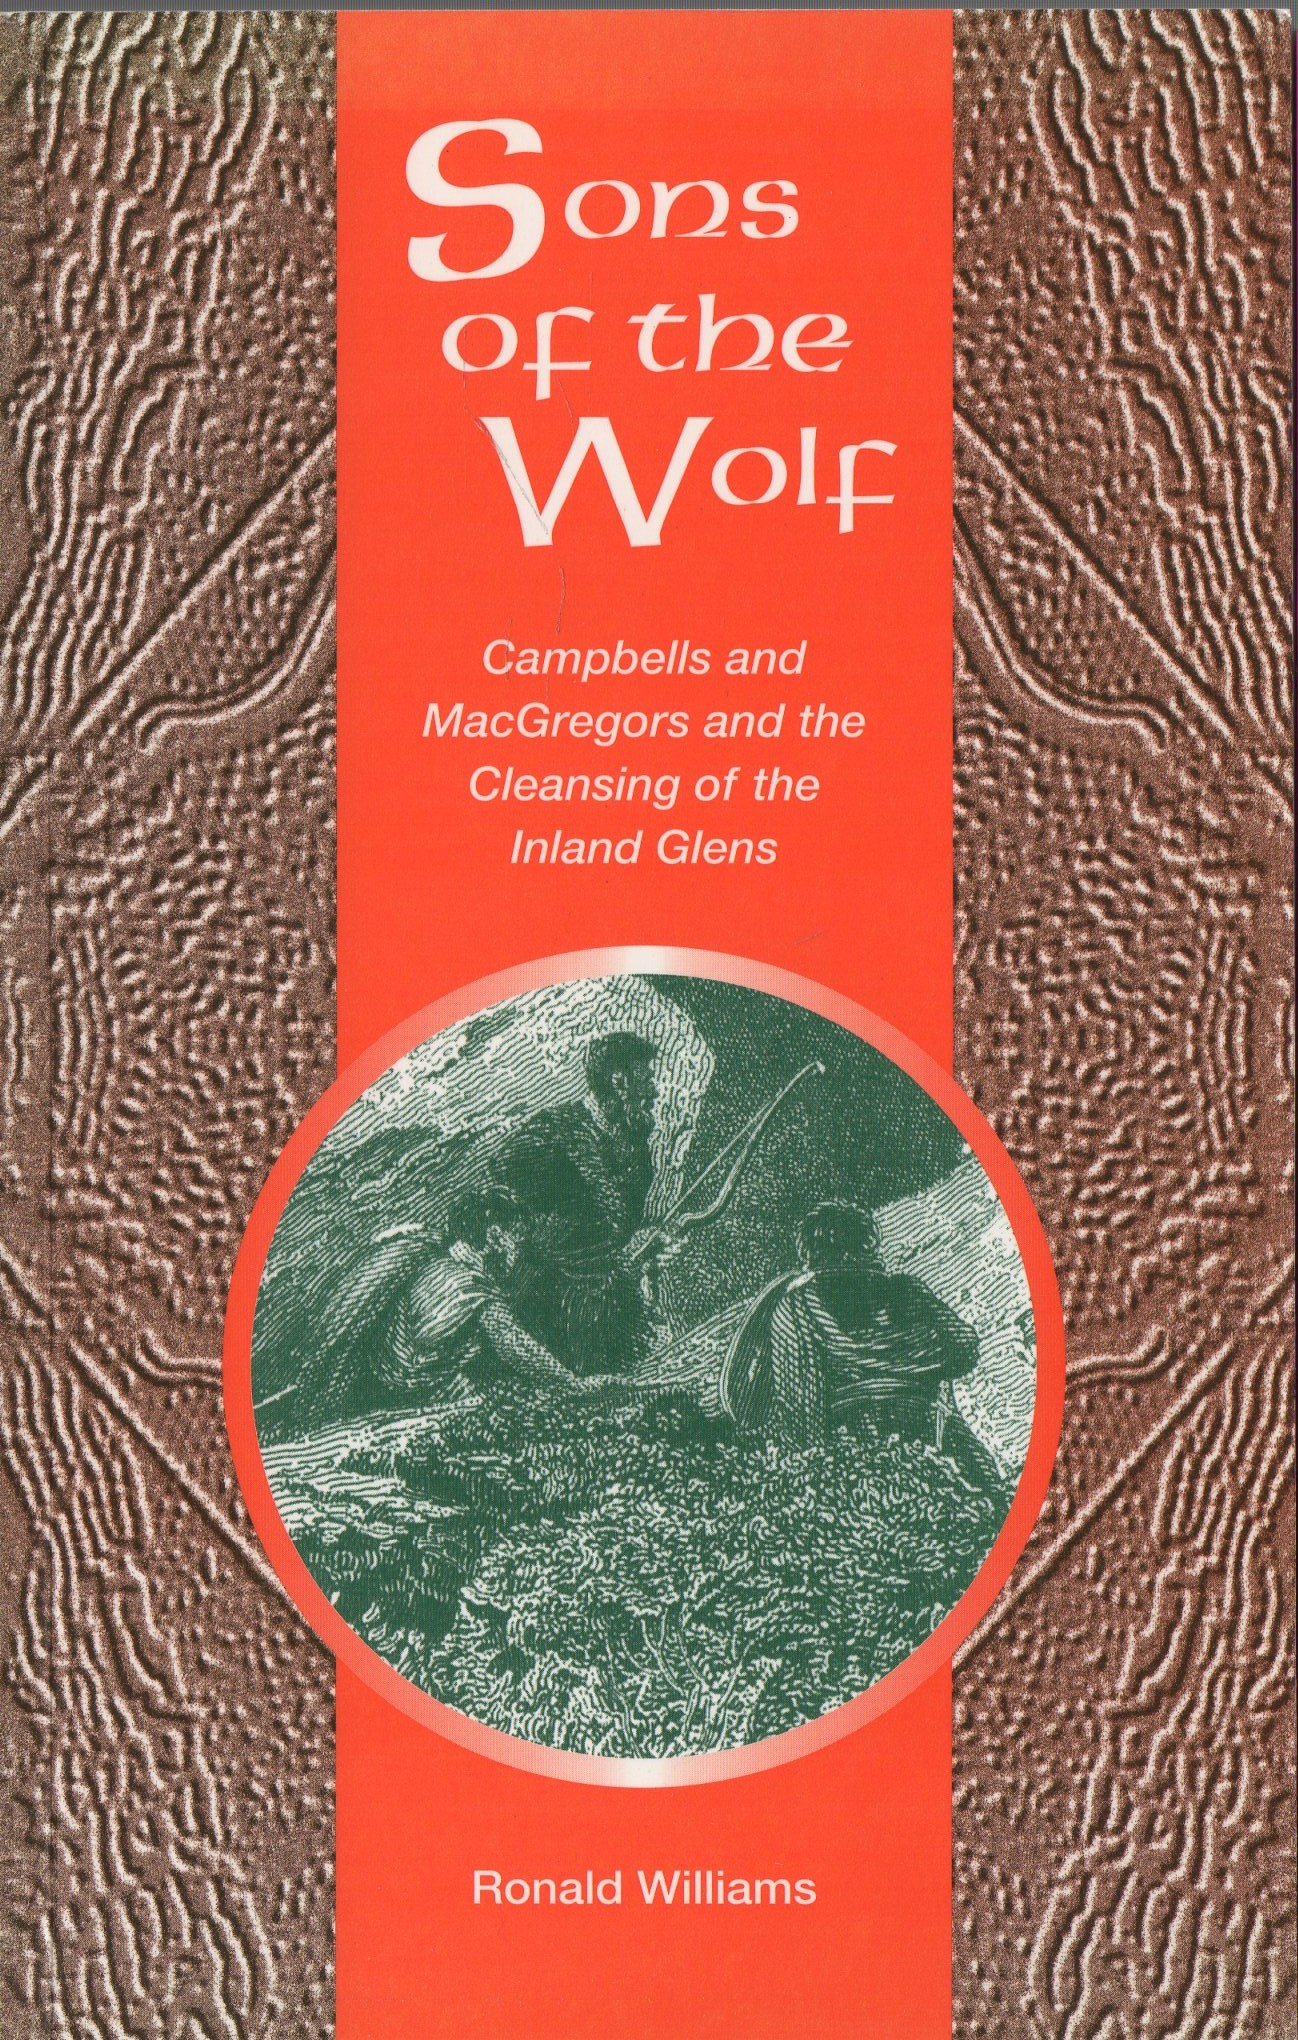 WILLIAMS, RONALD - Sons of the Wolf: Campbells and MacGregors and the Cleansing of the Inland Glens